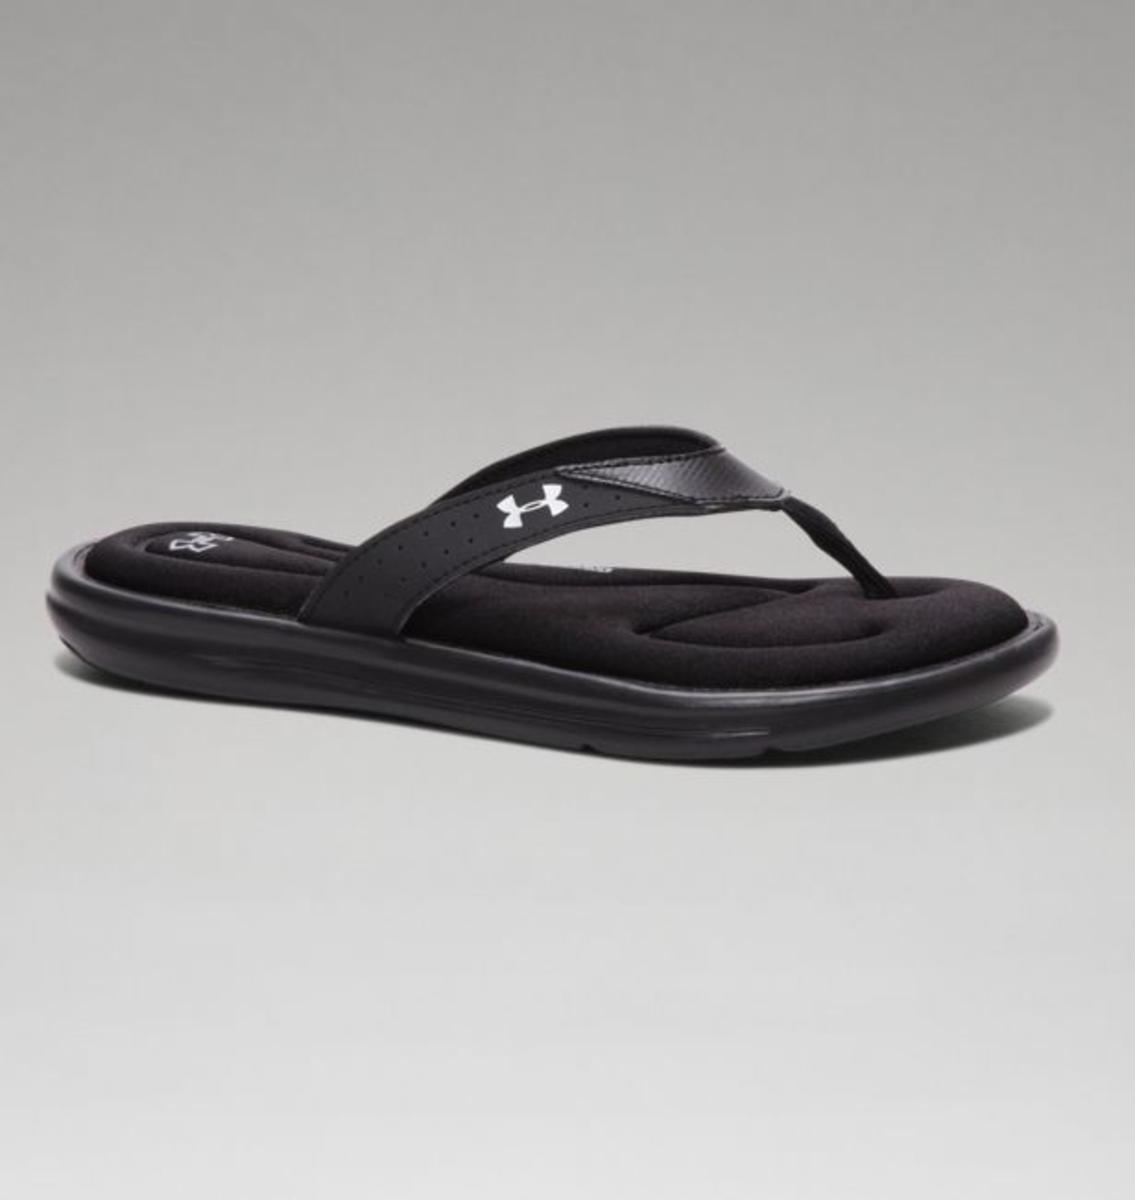 81b146735881 Under Armour Women s UA Marbella V Sandals - The Warming Store